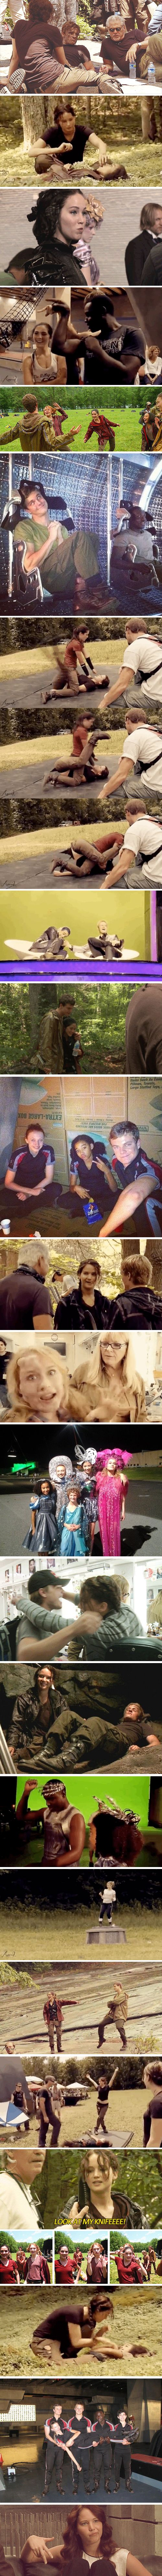 Hunger Games, behind the scenes